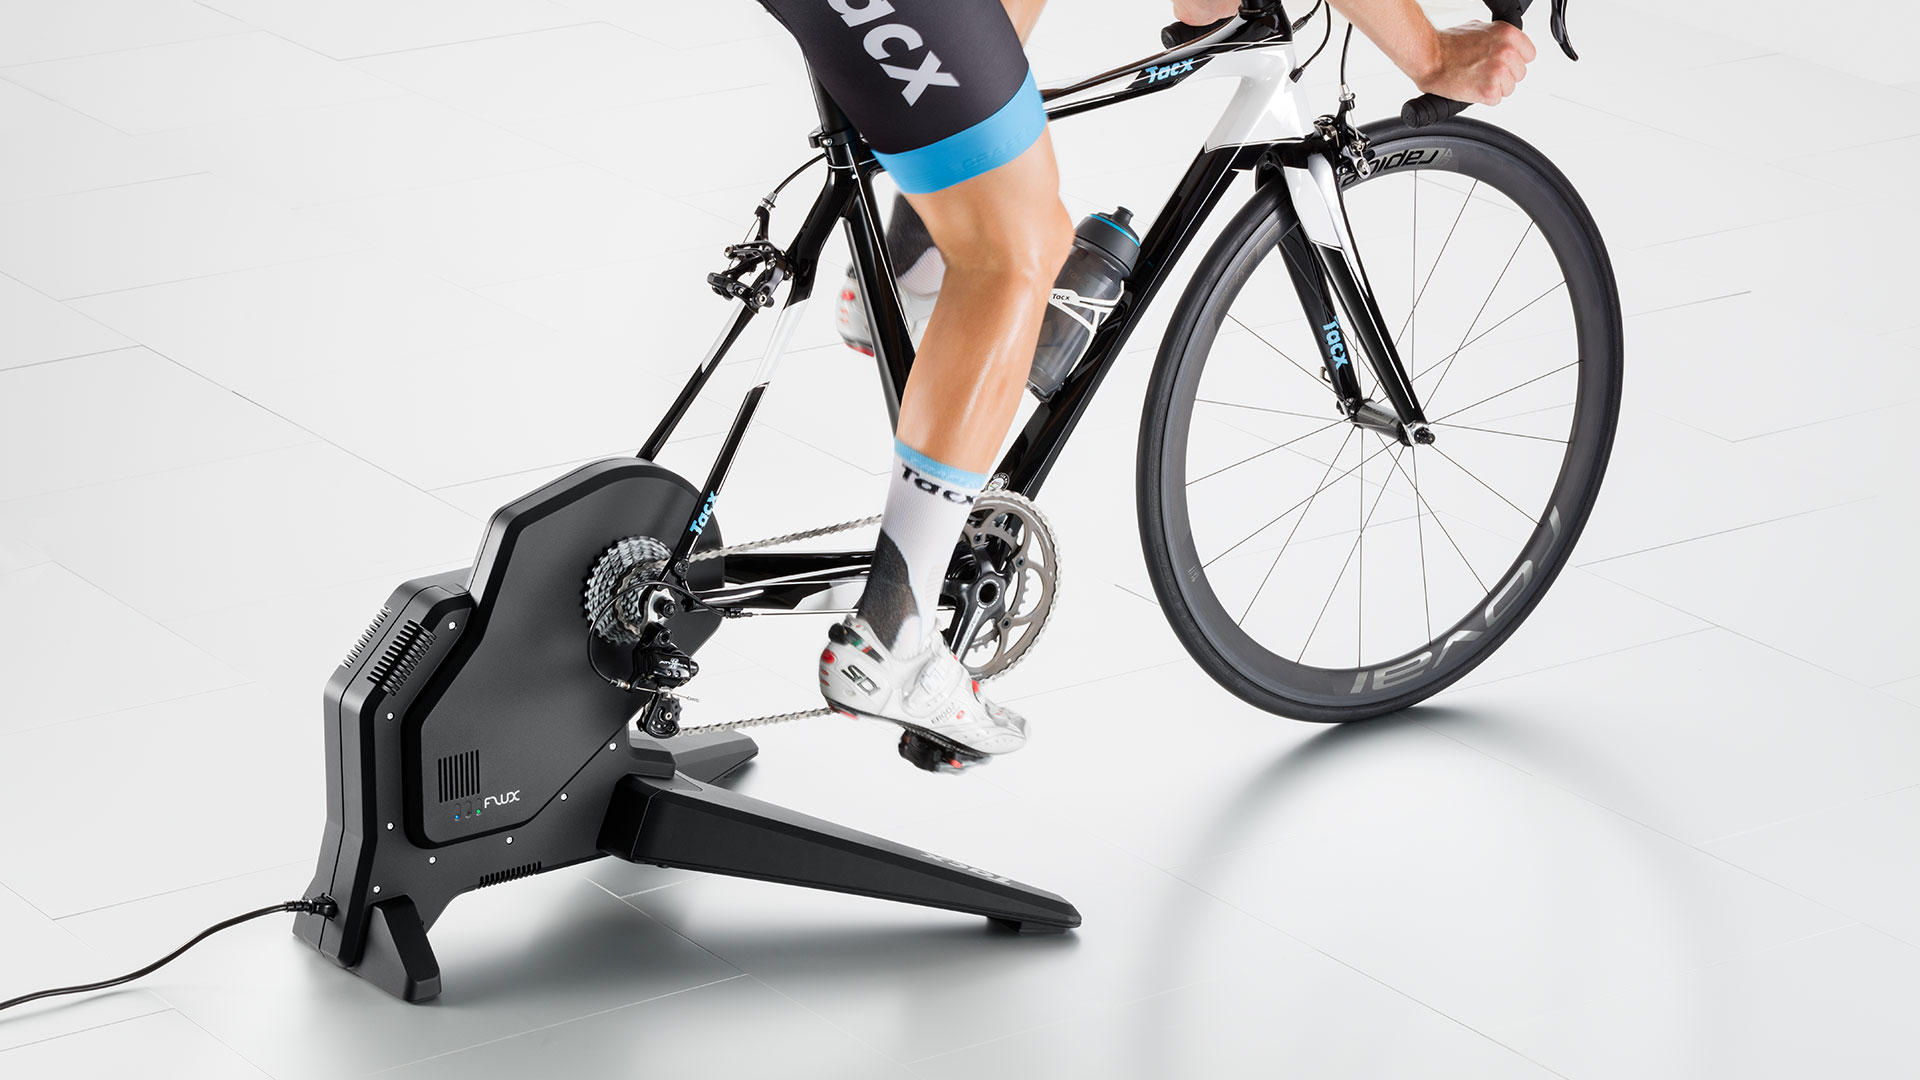 TACX Flux Smart Trainer - Croydon Cycleworks - Bike sales, bikefit ...